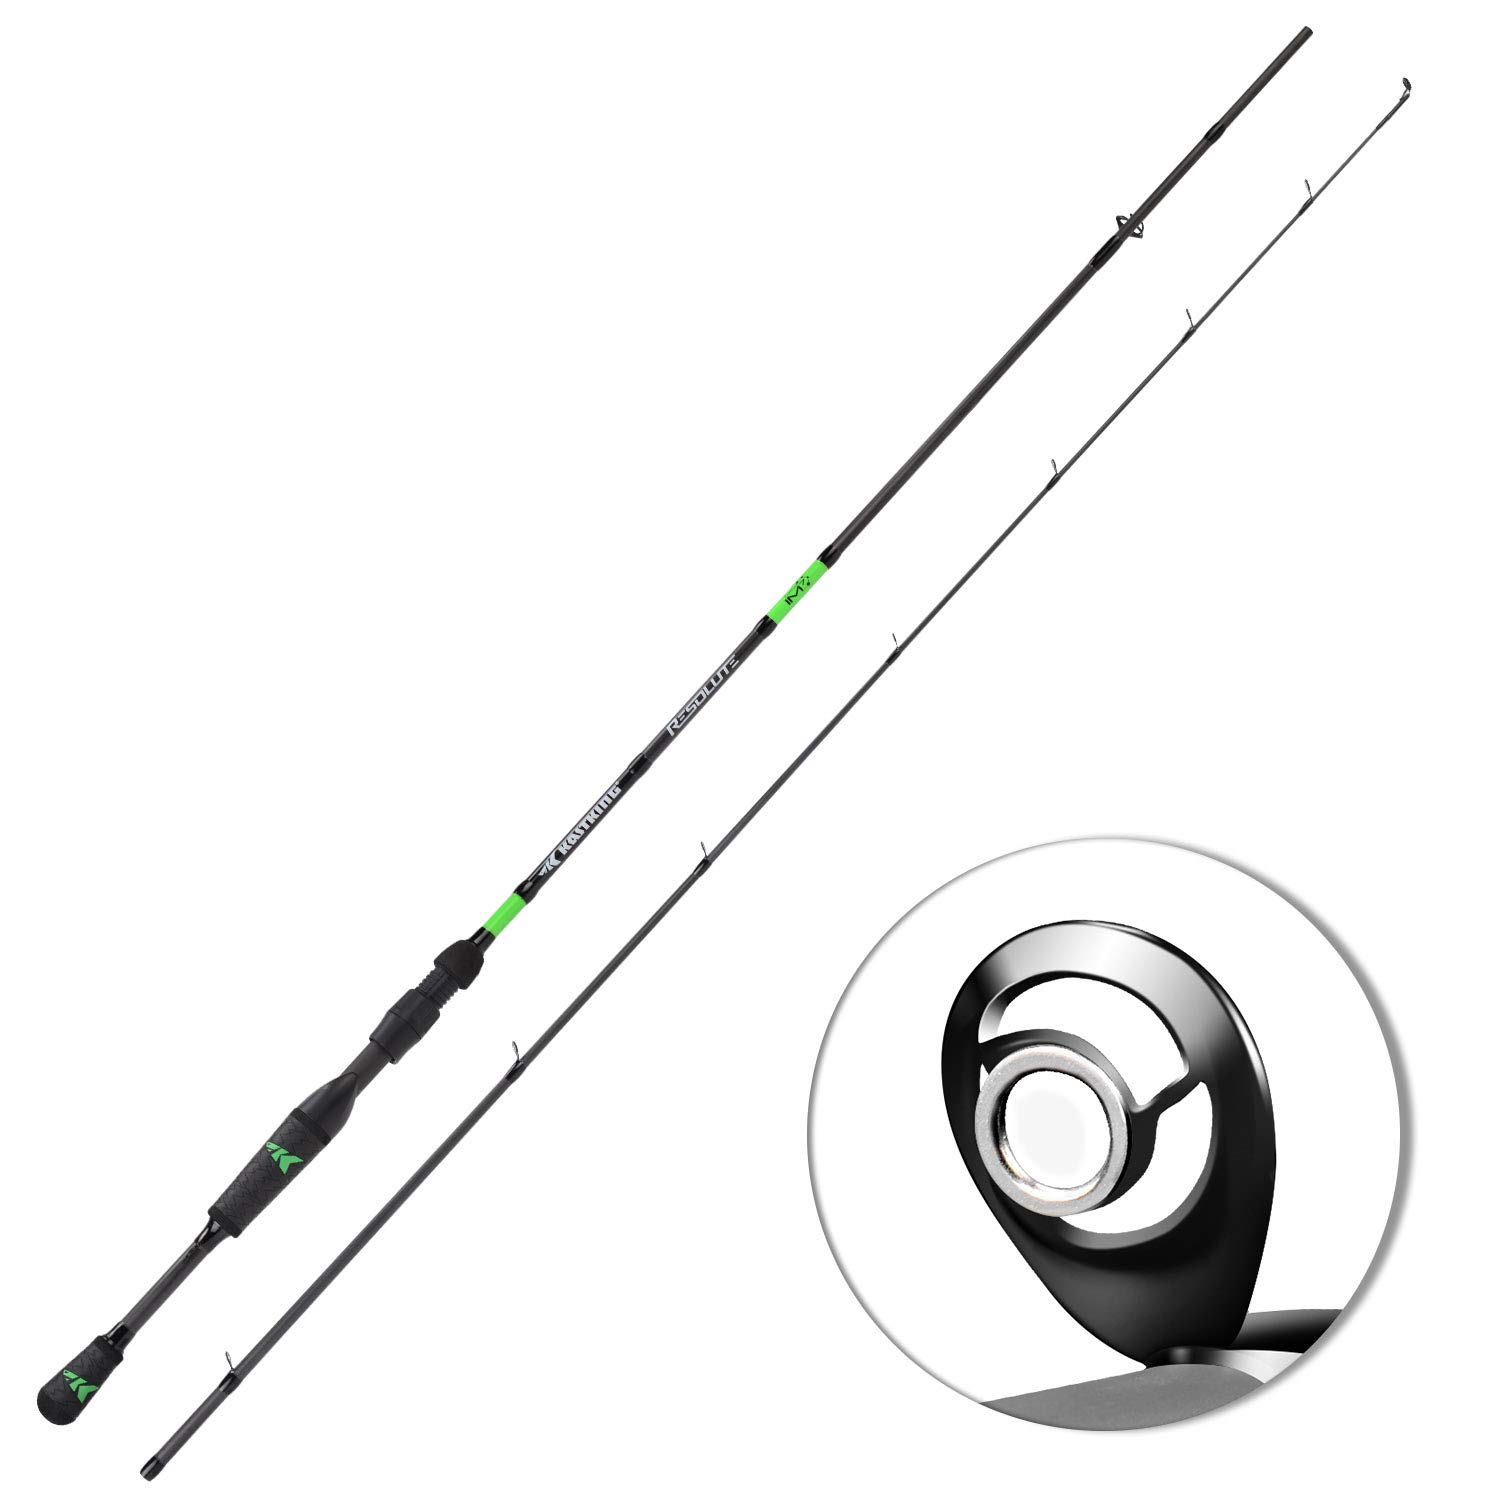 KastKing Resolute Fishing Rods, Spinning Rods Casting Rods, Ultra-Sensitive IM7 Carbon Fishing Rod Blanks, American Tackle Guides, American Tackle 2pc Bravo Reel Seat, 2pc Designs